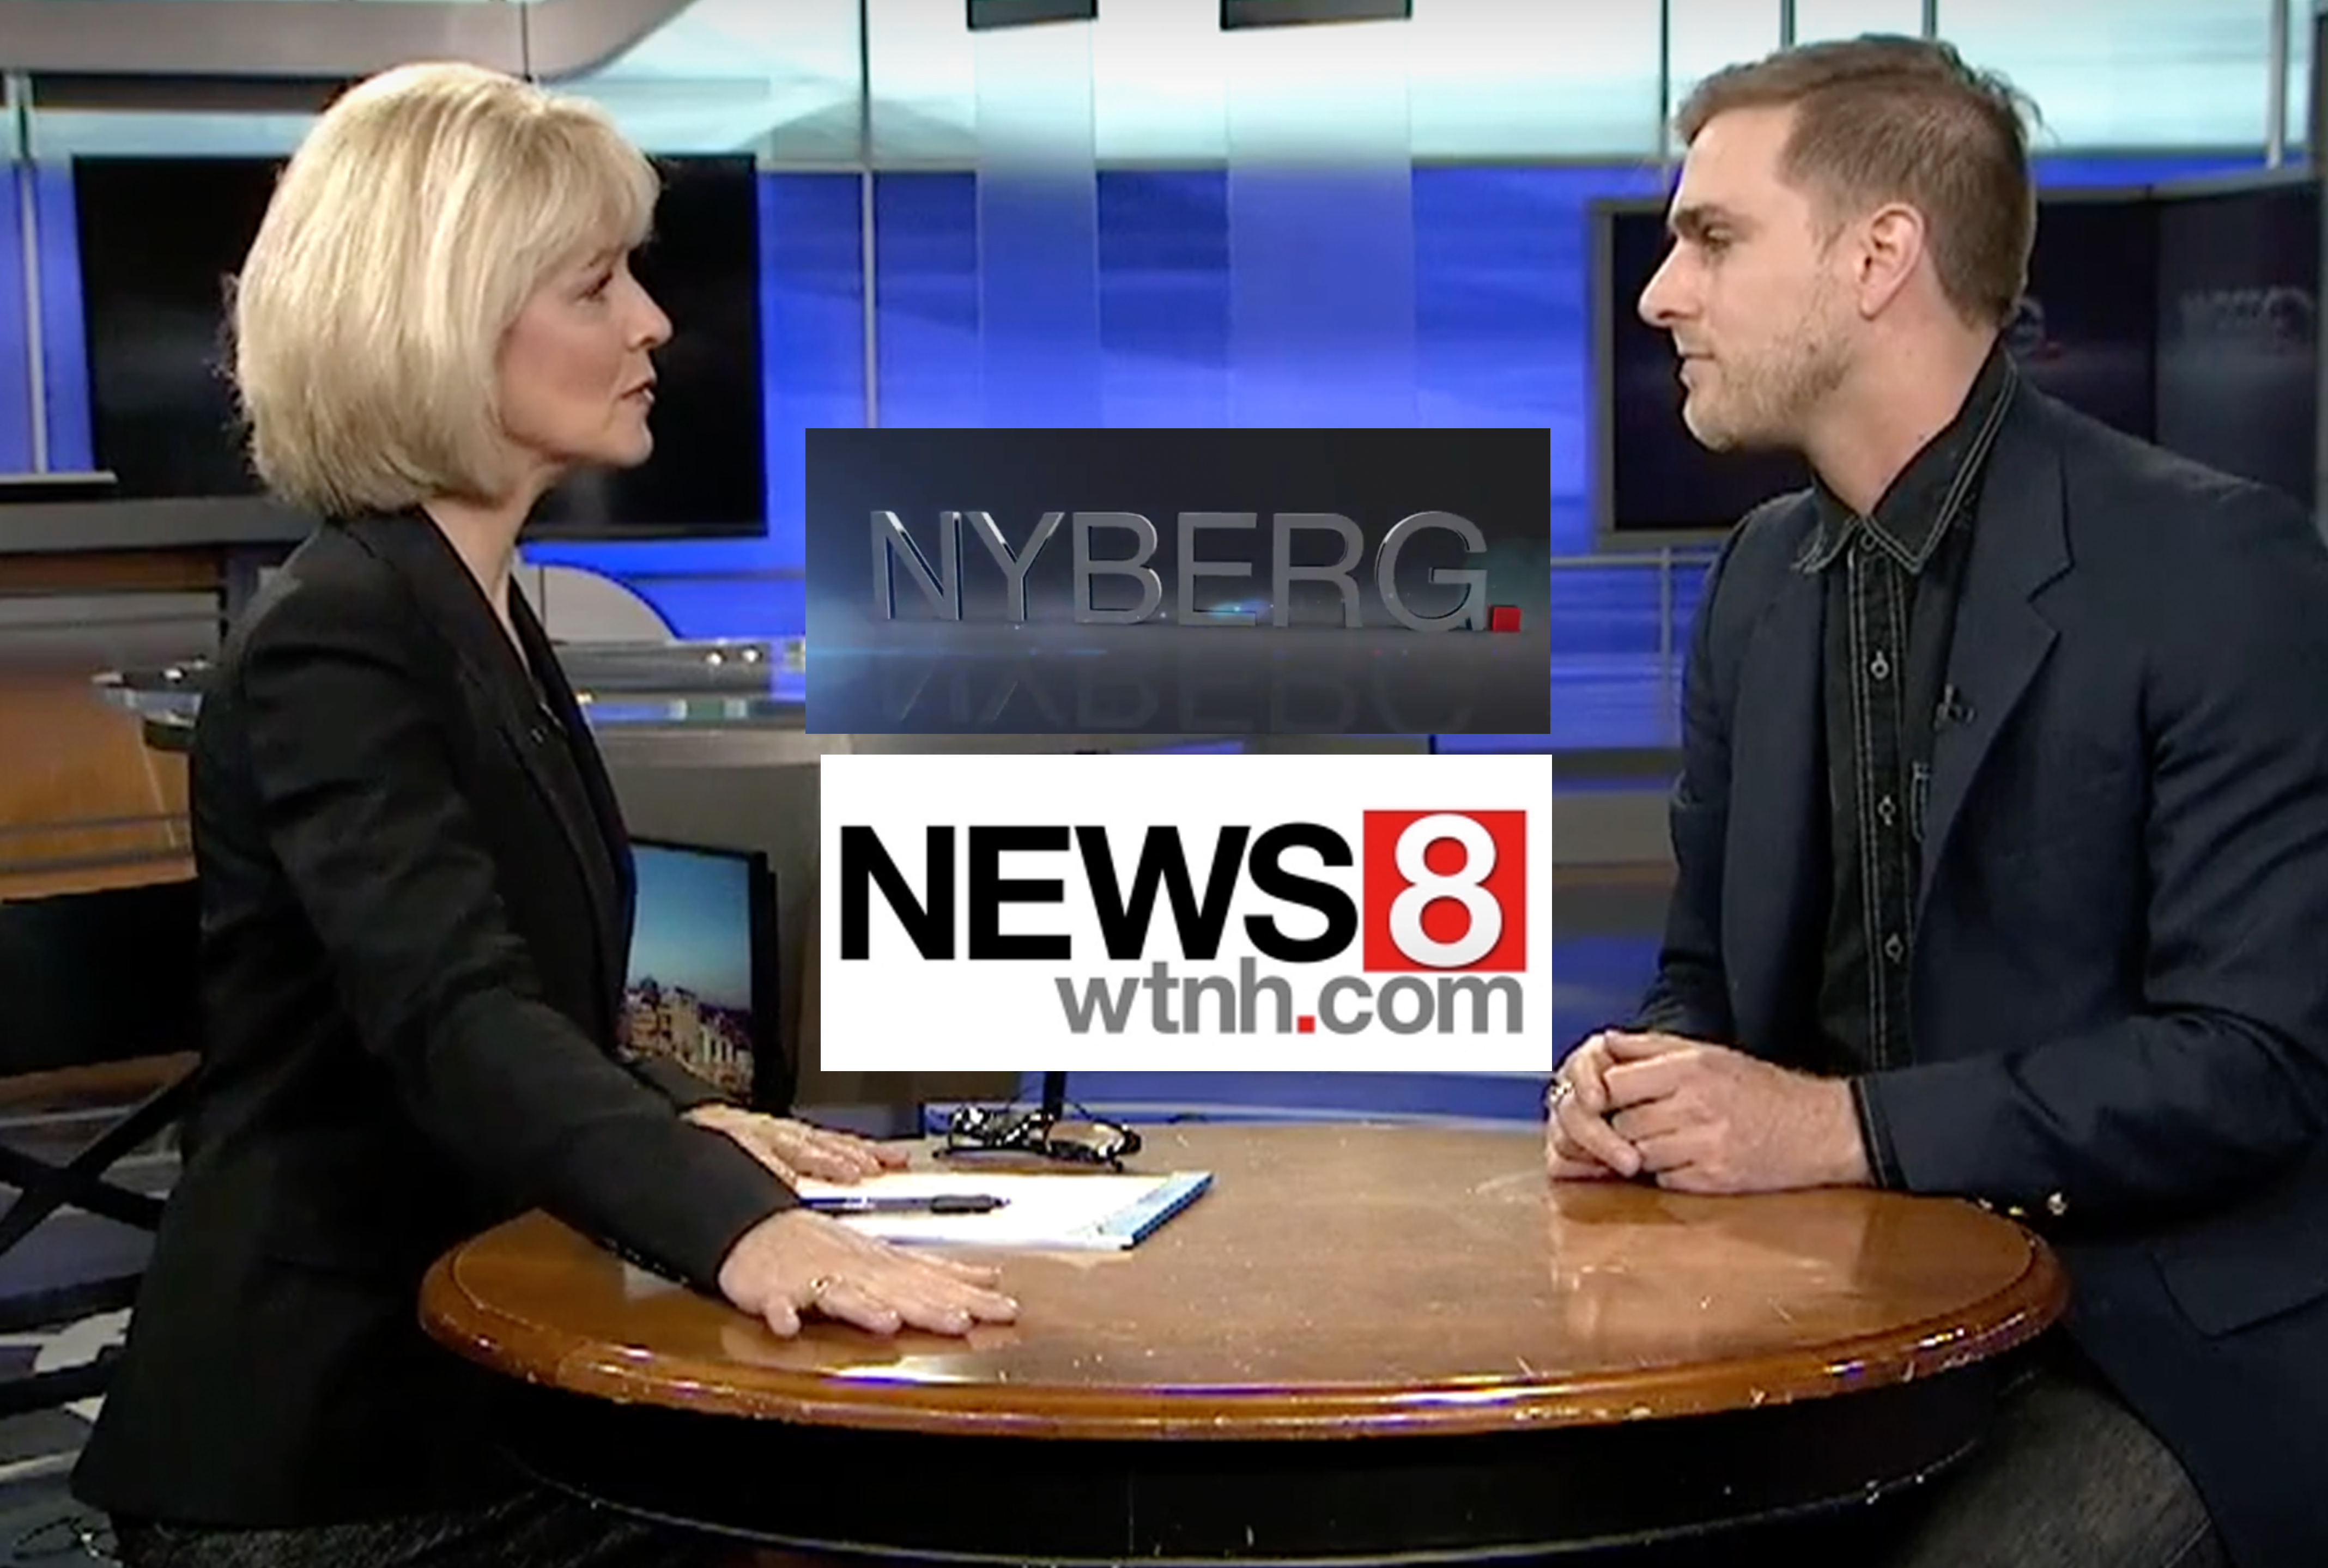 featured image wtnh